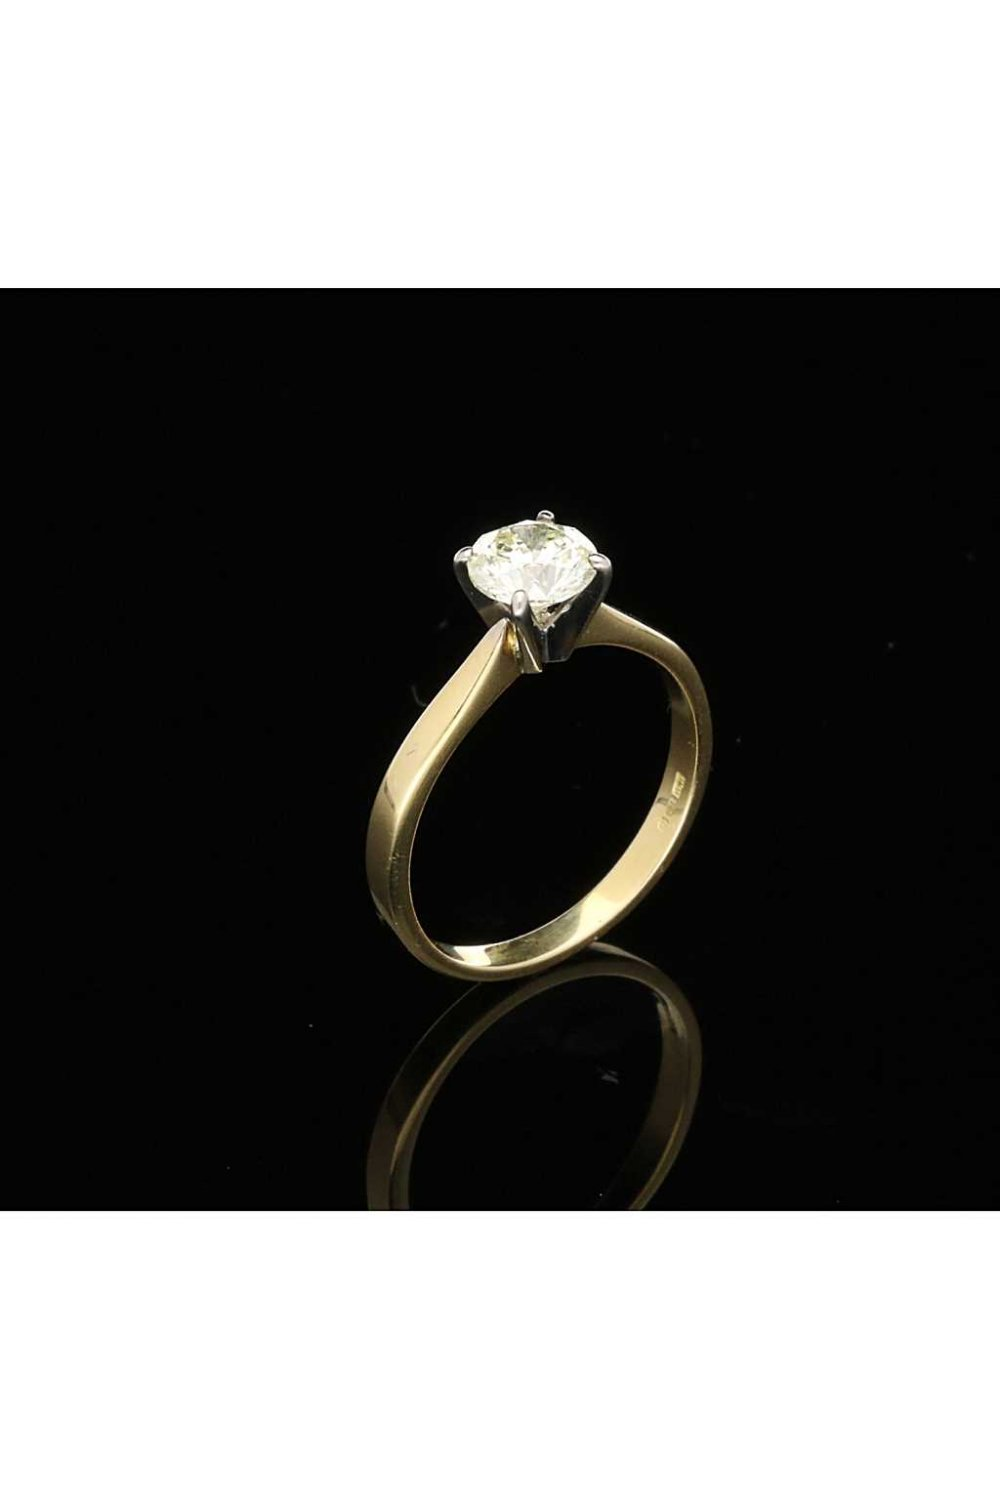 0 94ct Diamond Engagement Ring In 18ct Yellow Gold Second Hand